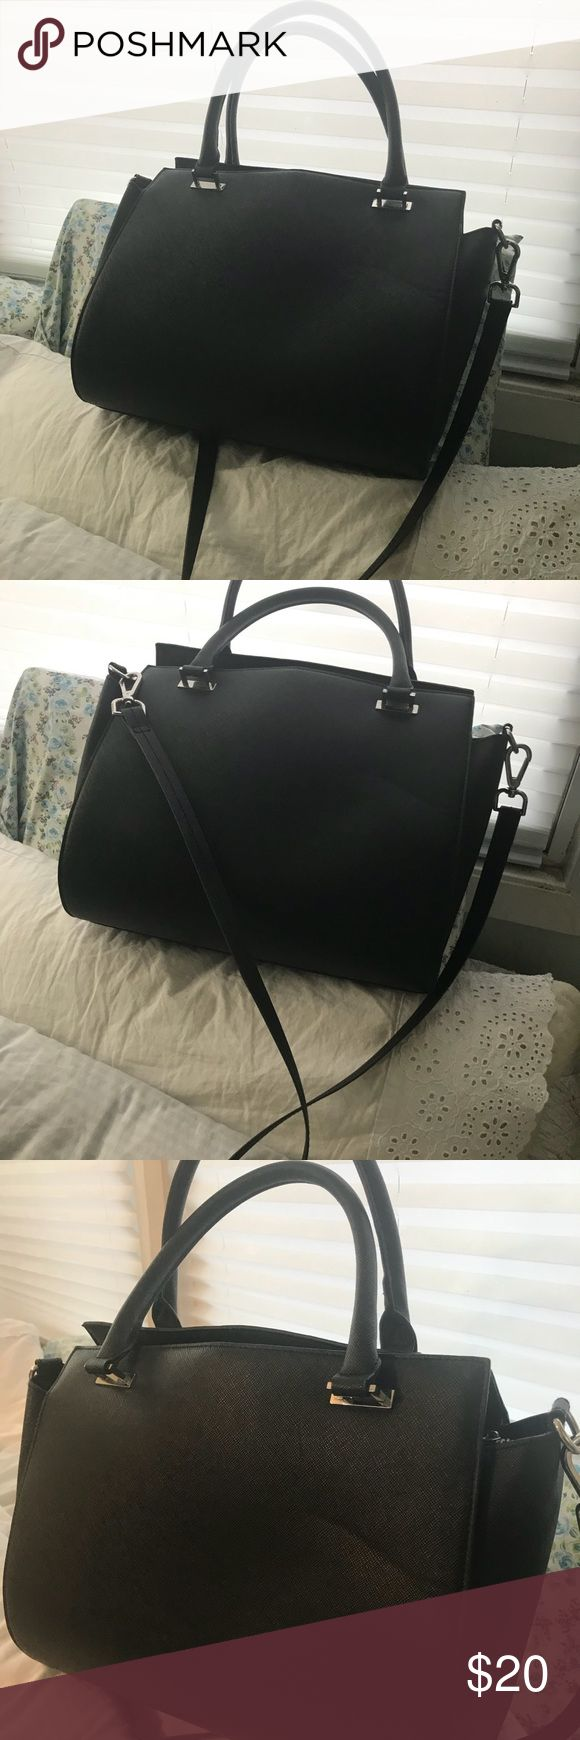 Structured H&M Doctor Bag Black Satchel Cross Body This is a fabulous structured Doctor type handbag by H&M. It's in excellent barely touched condition. Roomy enough to hold absolutely everything you need!! Black fabric lining. A great bag you will love!! And it works cross body with the long adjustable strap. H&M Bags Crossbody Bags